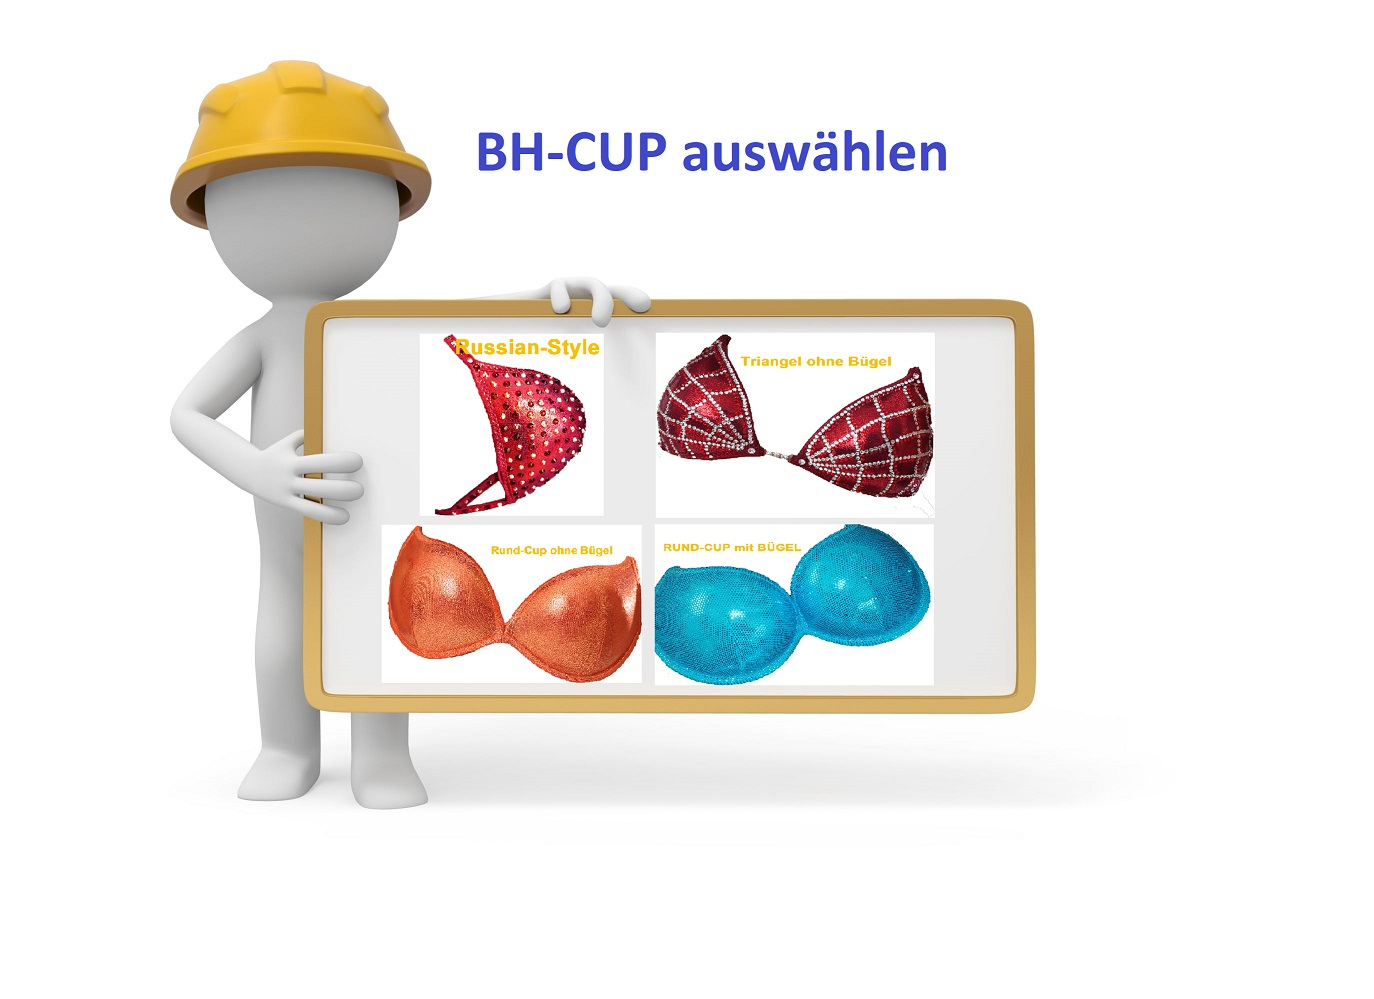 BH-CUP-auswahl